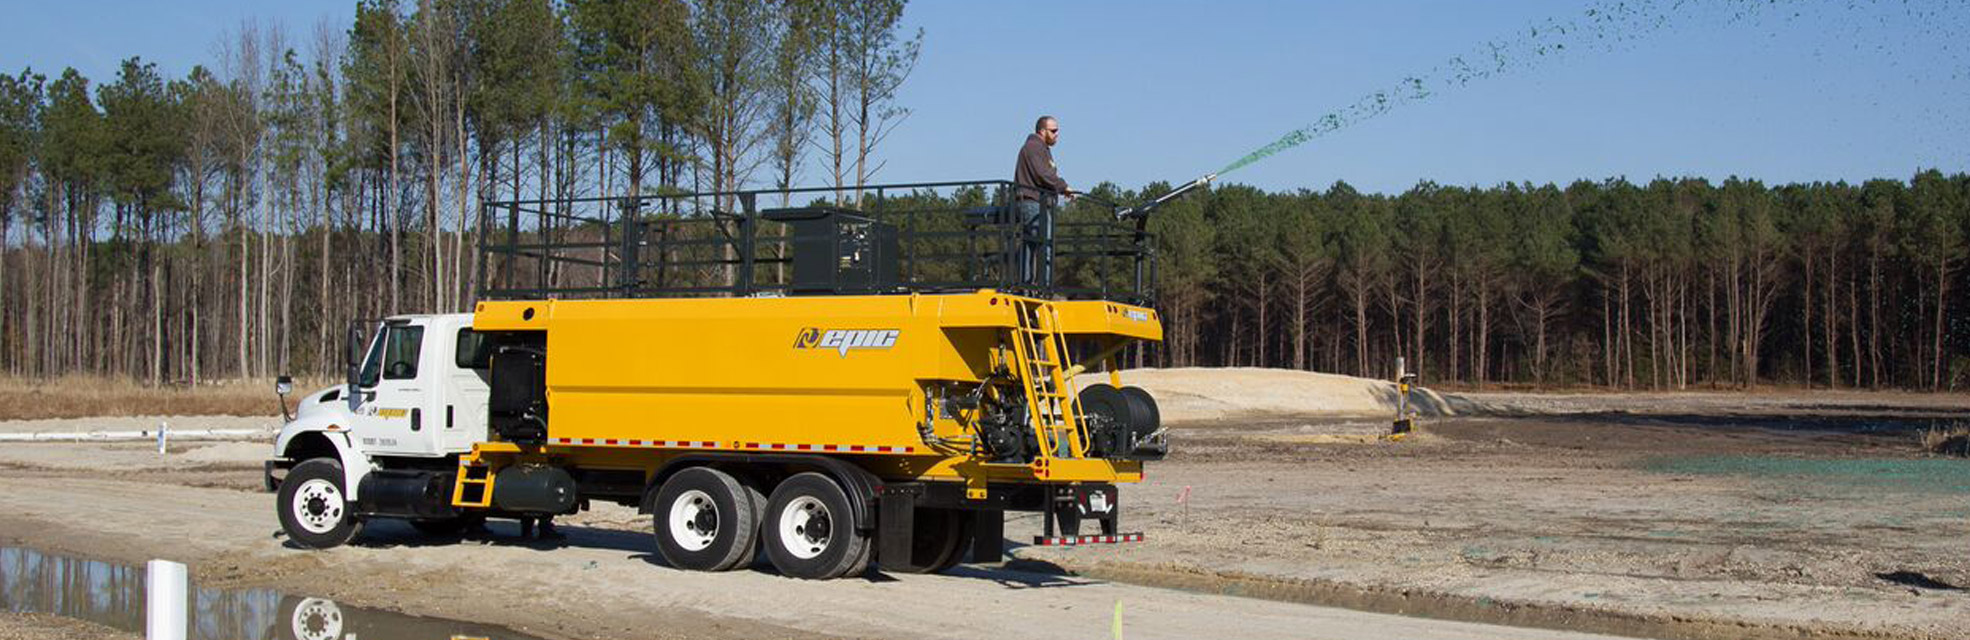 97_epic-all-new-c330ho Commercial Hydroseeder Line | Paddle Agitation | Epic Manufacturing